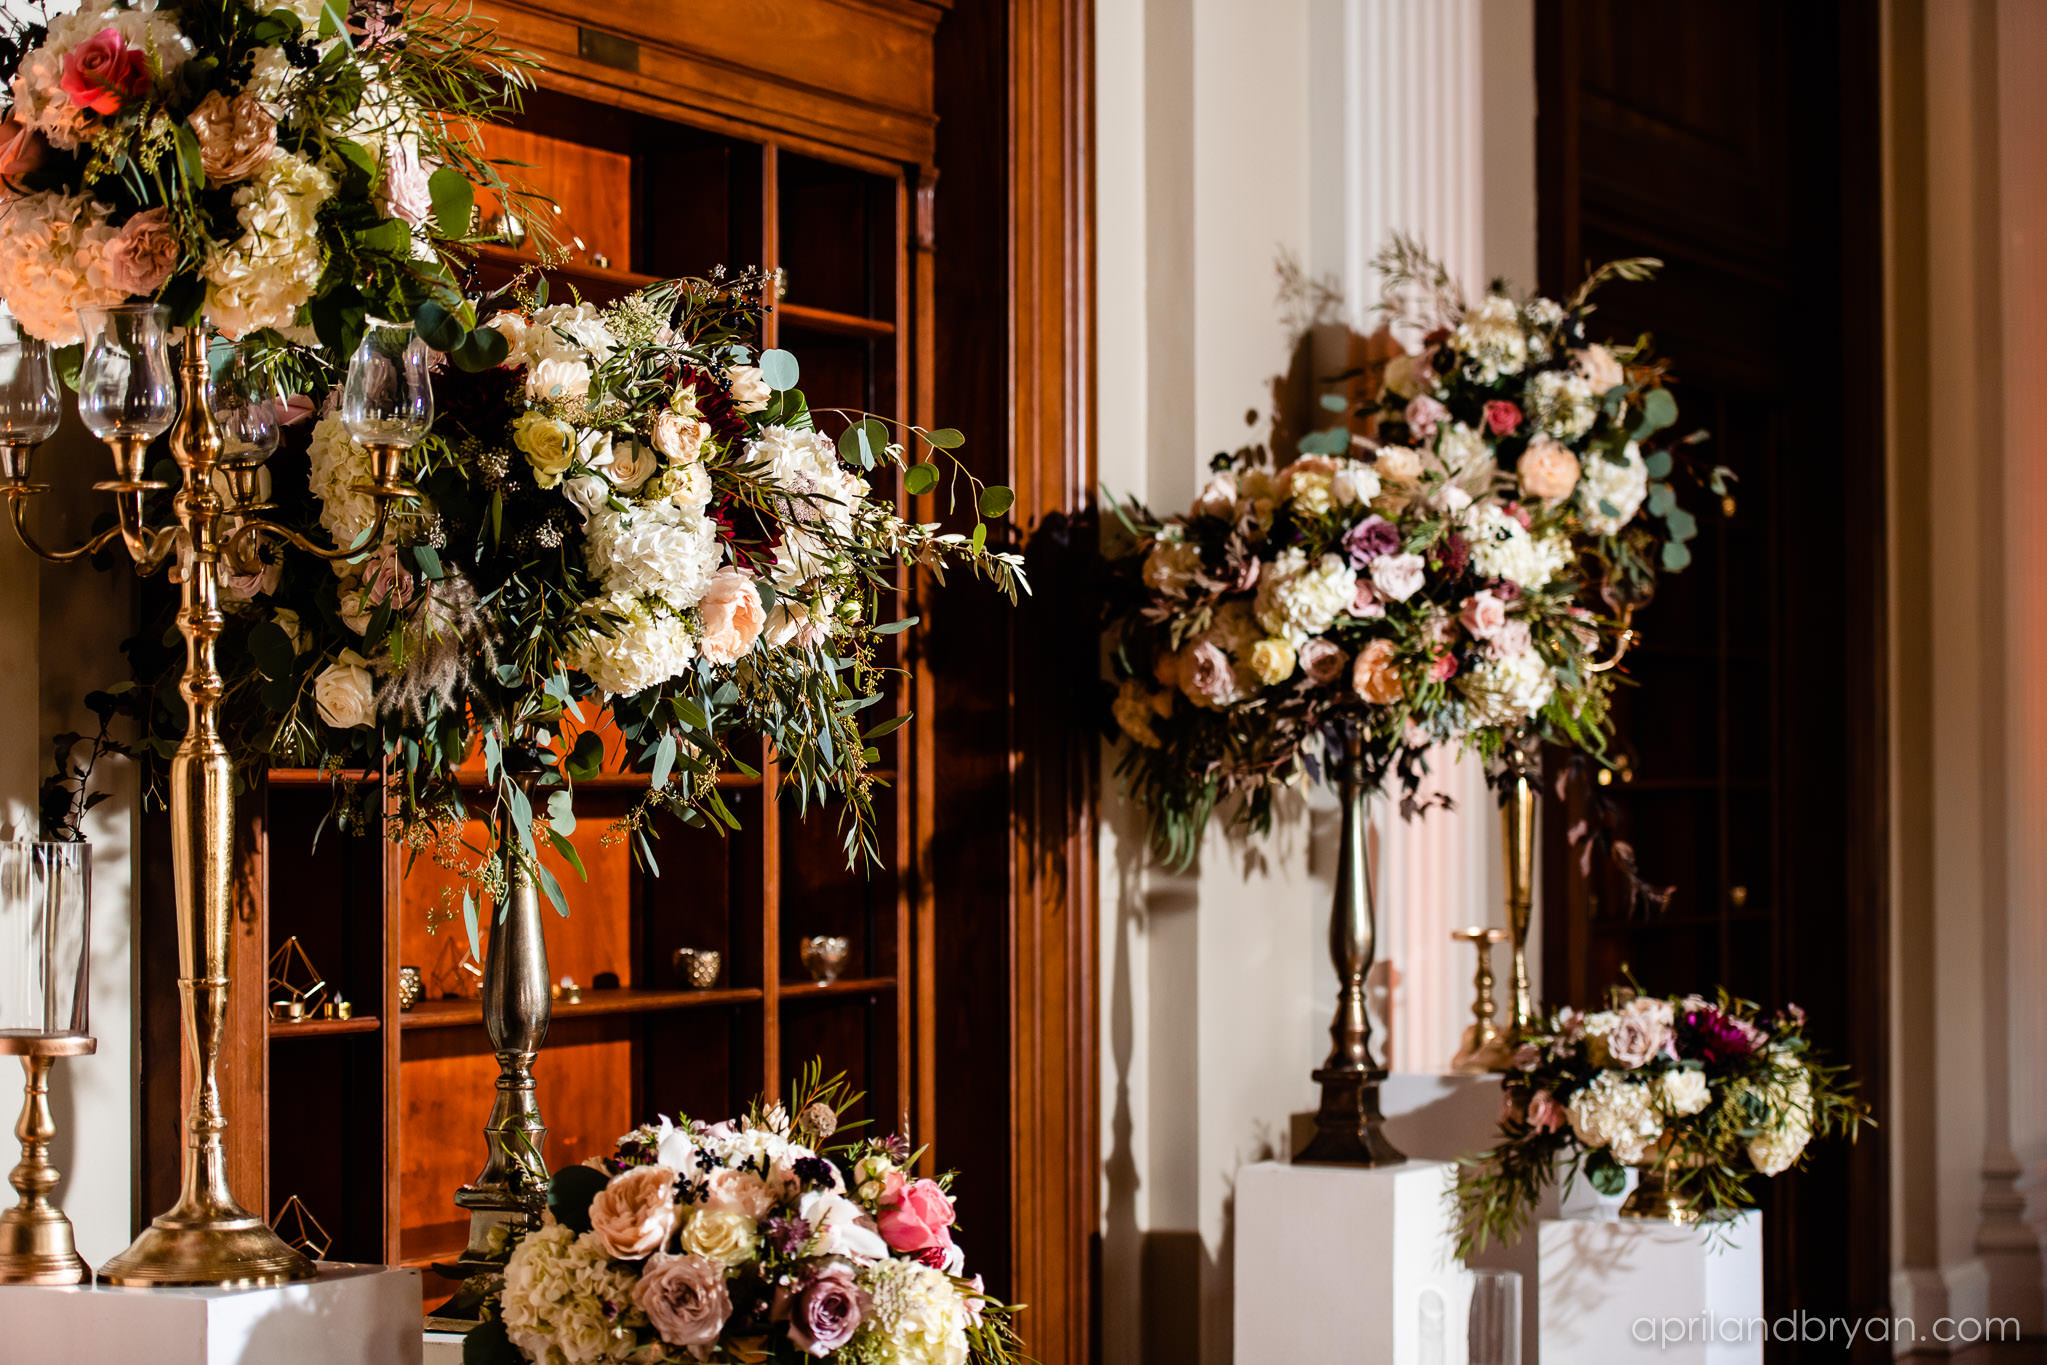 Blush pink and white flowers paired with greenery frame the Franklin Institute ceremony photographed by April & Bryan Photography. Featured on Dream Weddings.